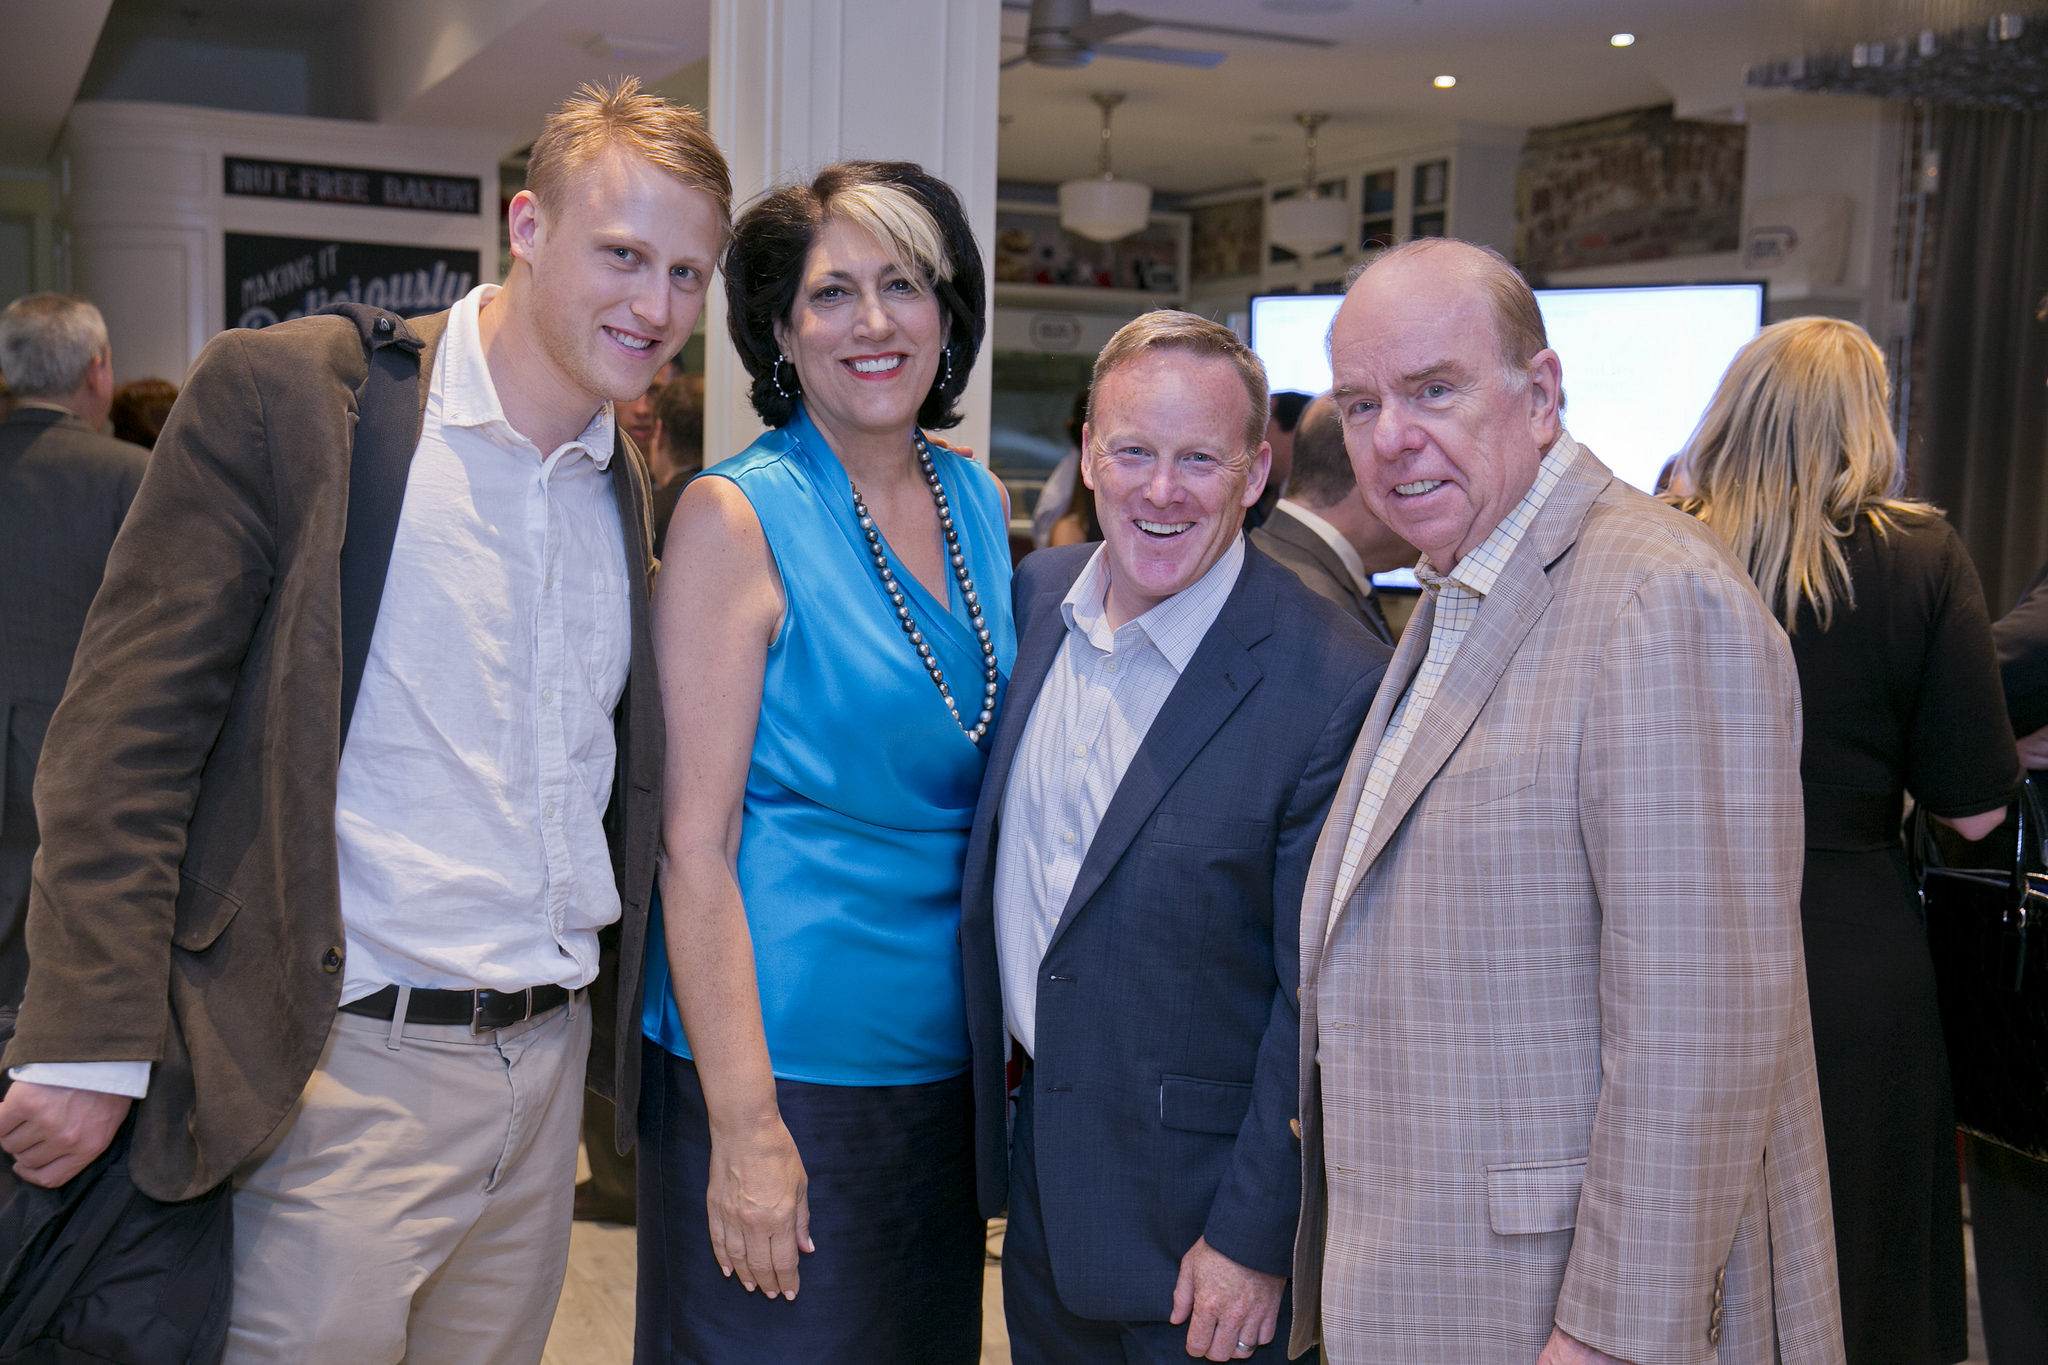 Daniel Lippman, Tammy Haddad, Sean Spicer. Photo courtesy of Haddad Media.